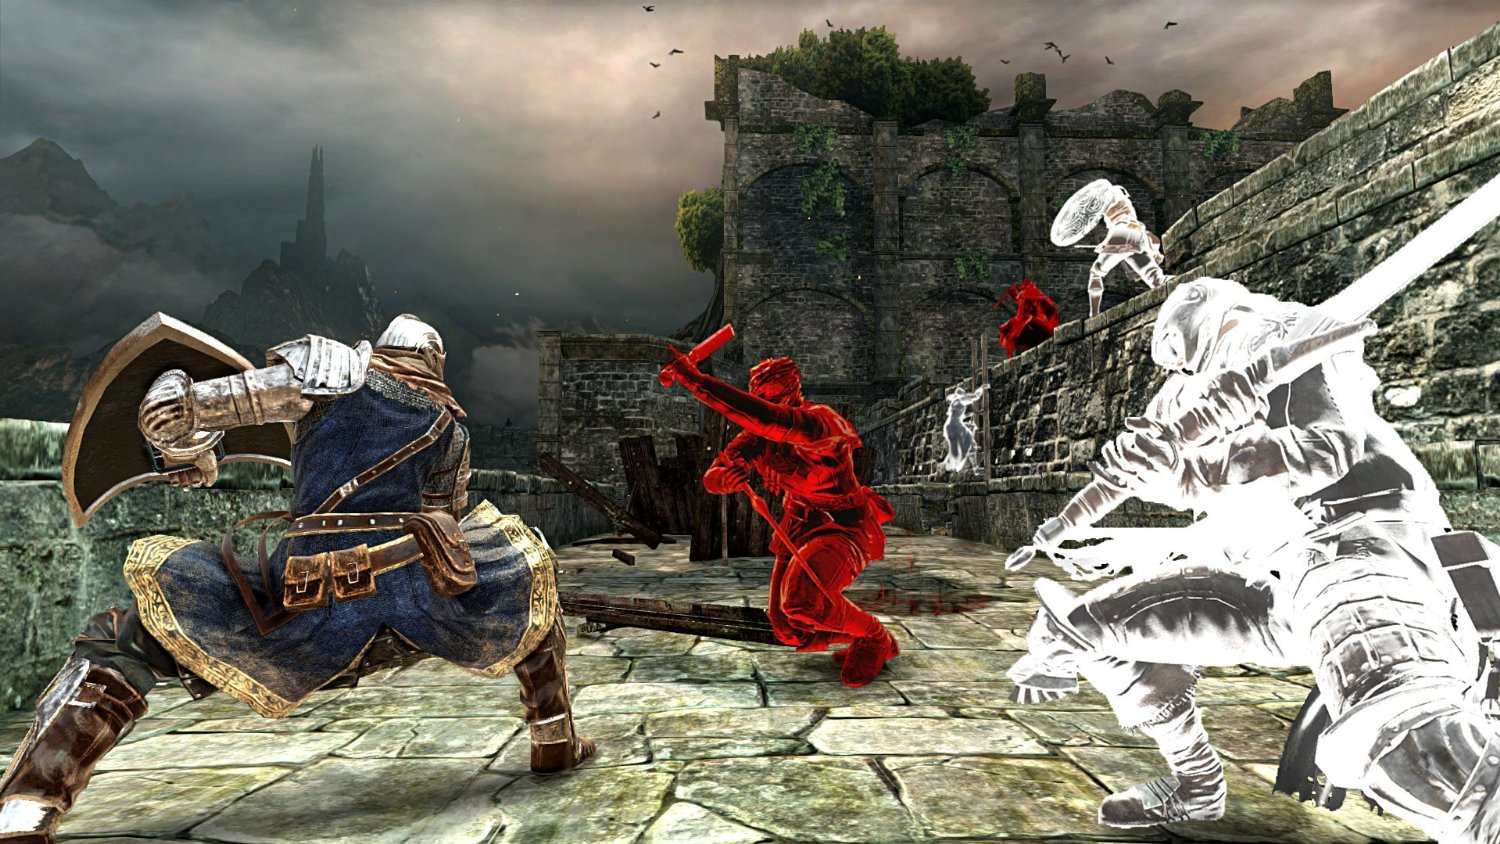 Dark Souls 2: Scholar of the First Sin (GOTY) pro Playstation 4